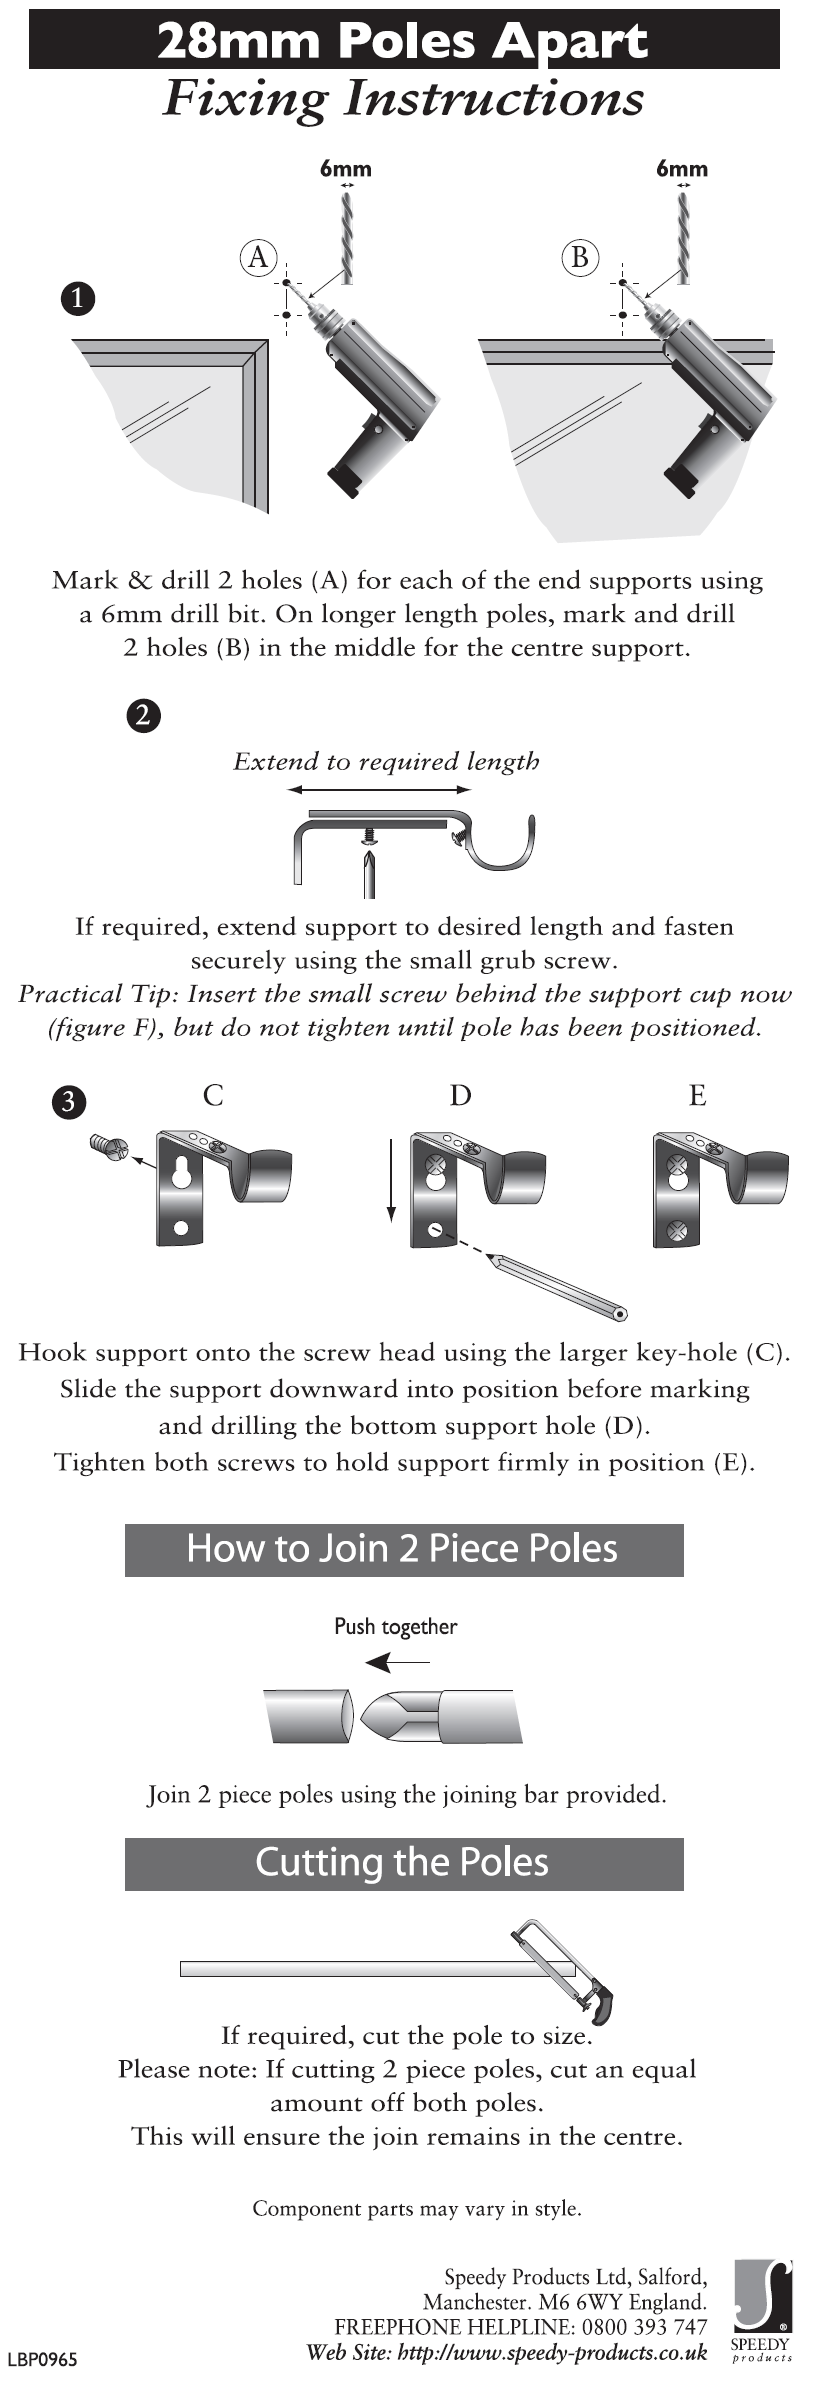 28mm Poles Apart Fitting Instructions